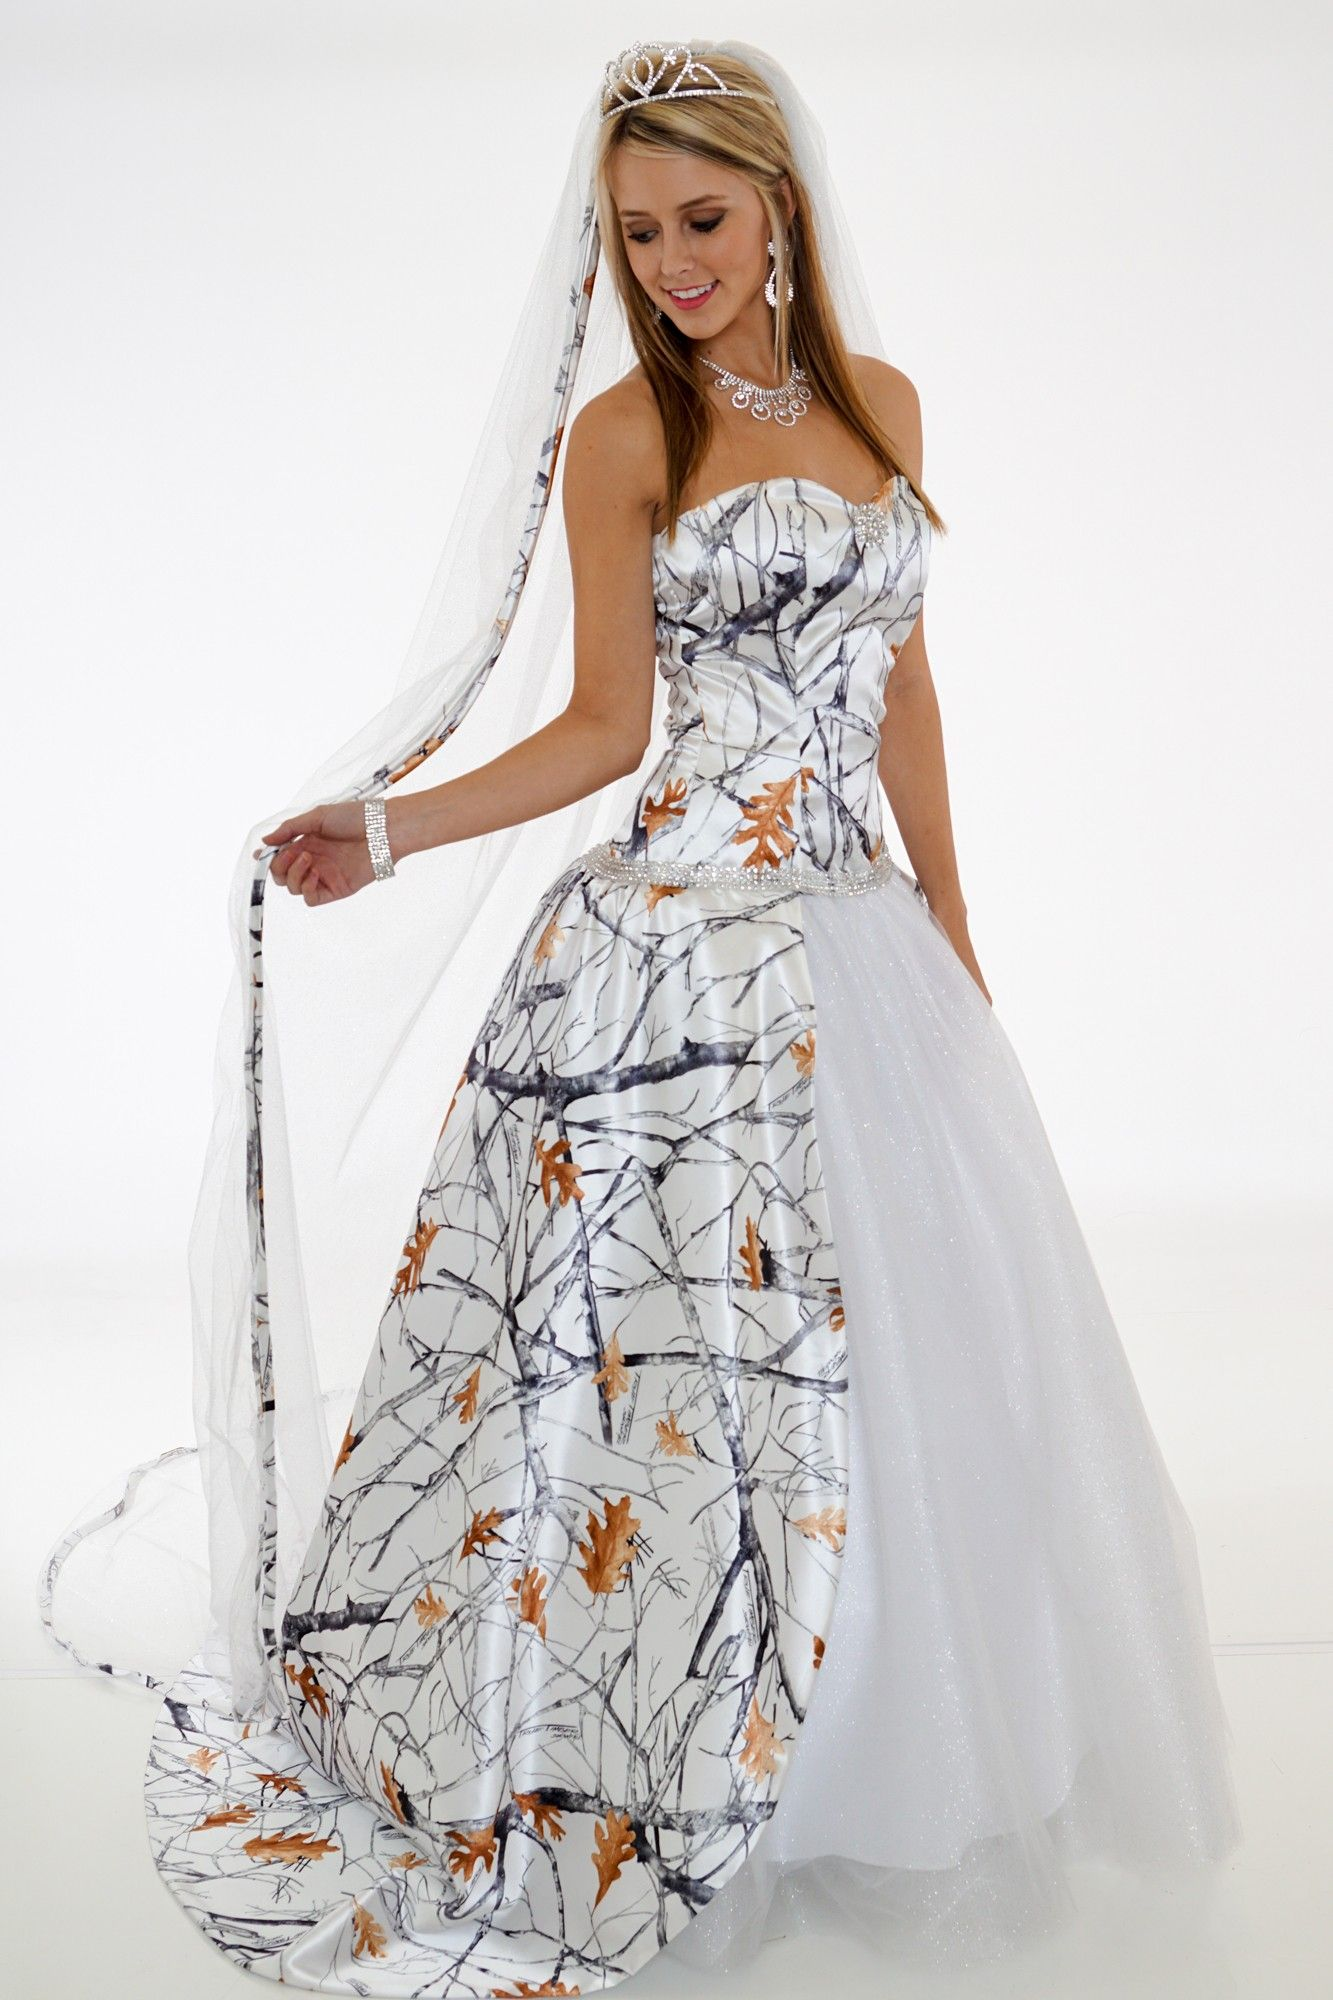 3655 Rtgnwt Camo Wedding Gown With Train And Veil Camo Wedding Dresses Camouflage Wedding Dresses Camo Bridesmaid Dresses